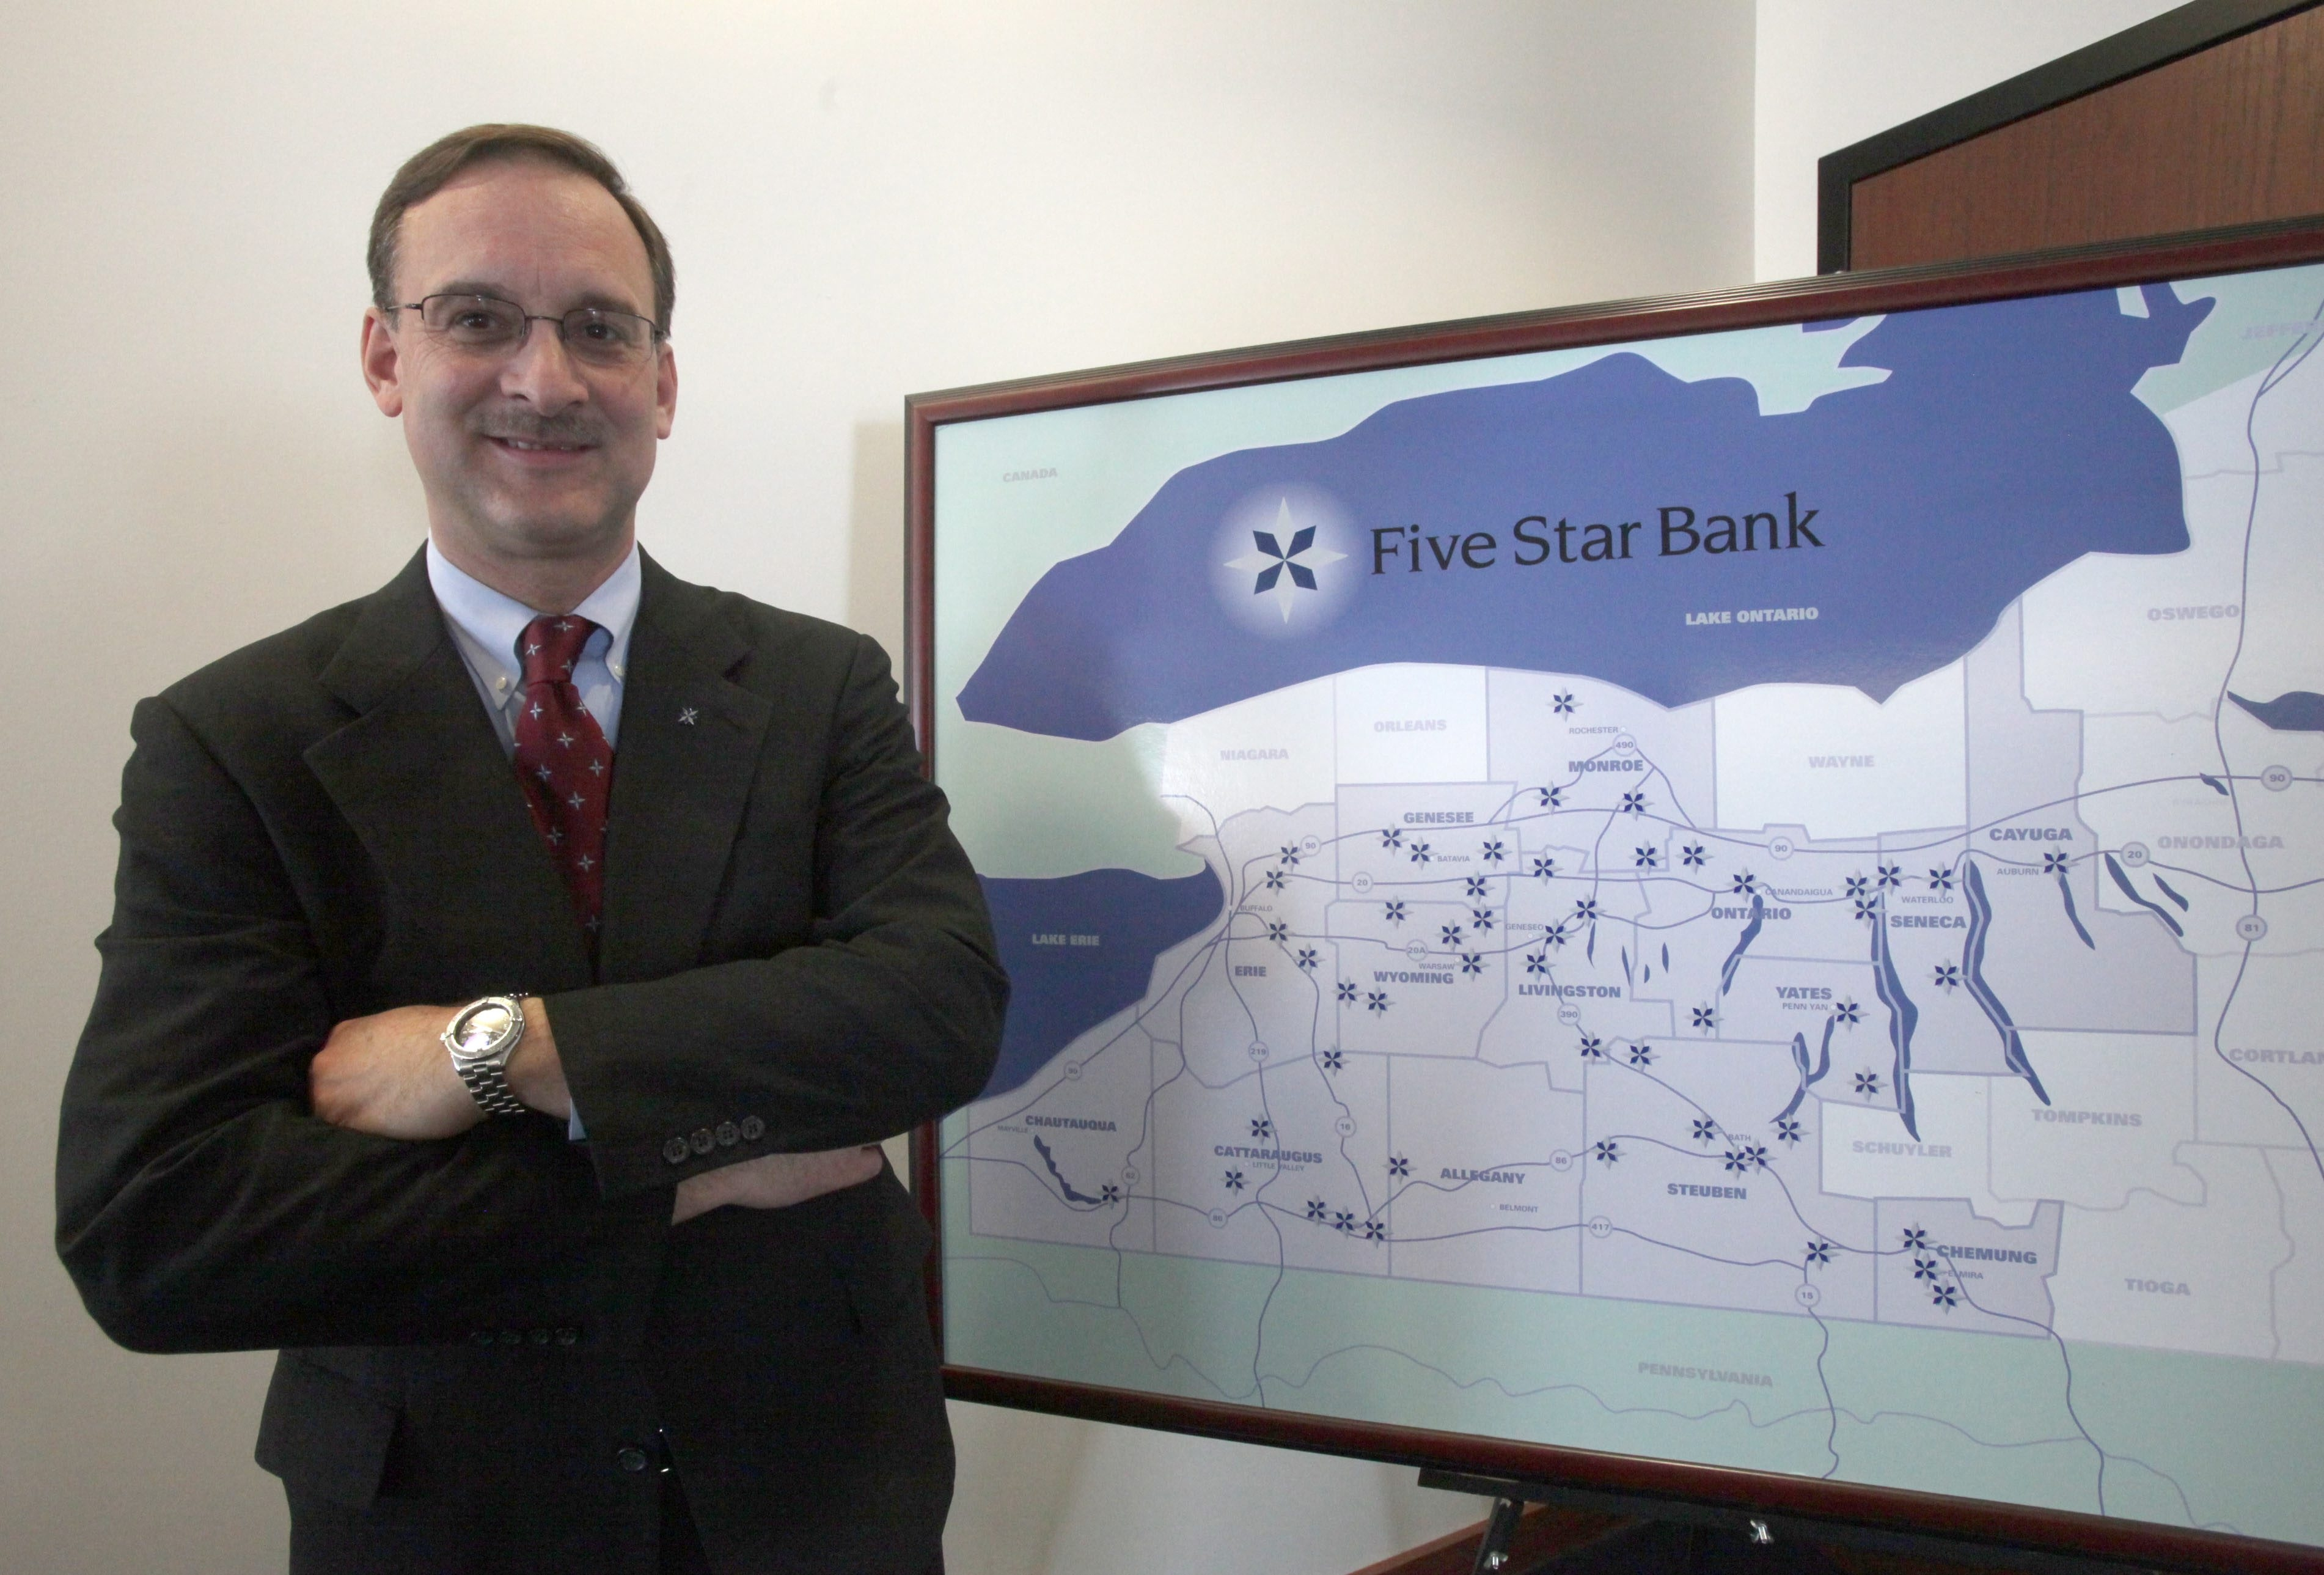 Peter Humphrey, the longtime CEO and president of Five Star Bank and its parent company, retired in 2011. (Robert Kirkham/Buffalo News file photo)